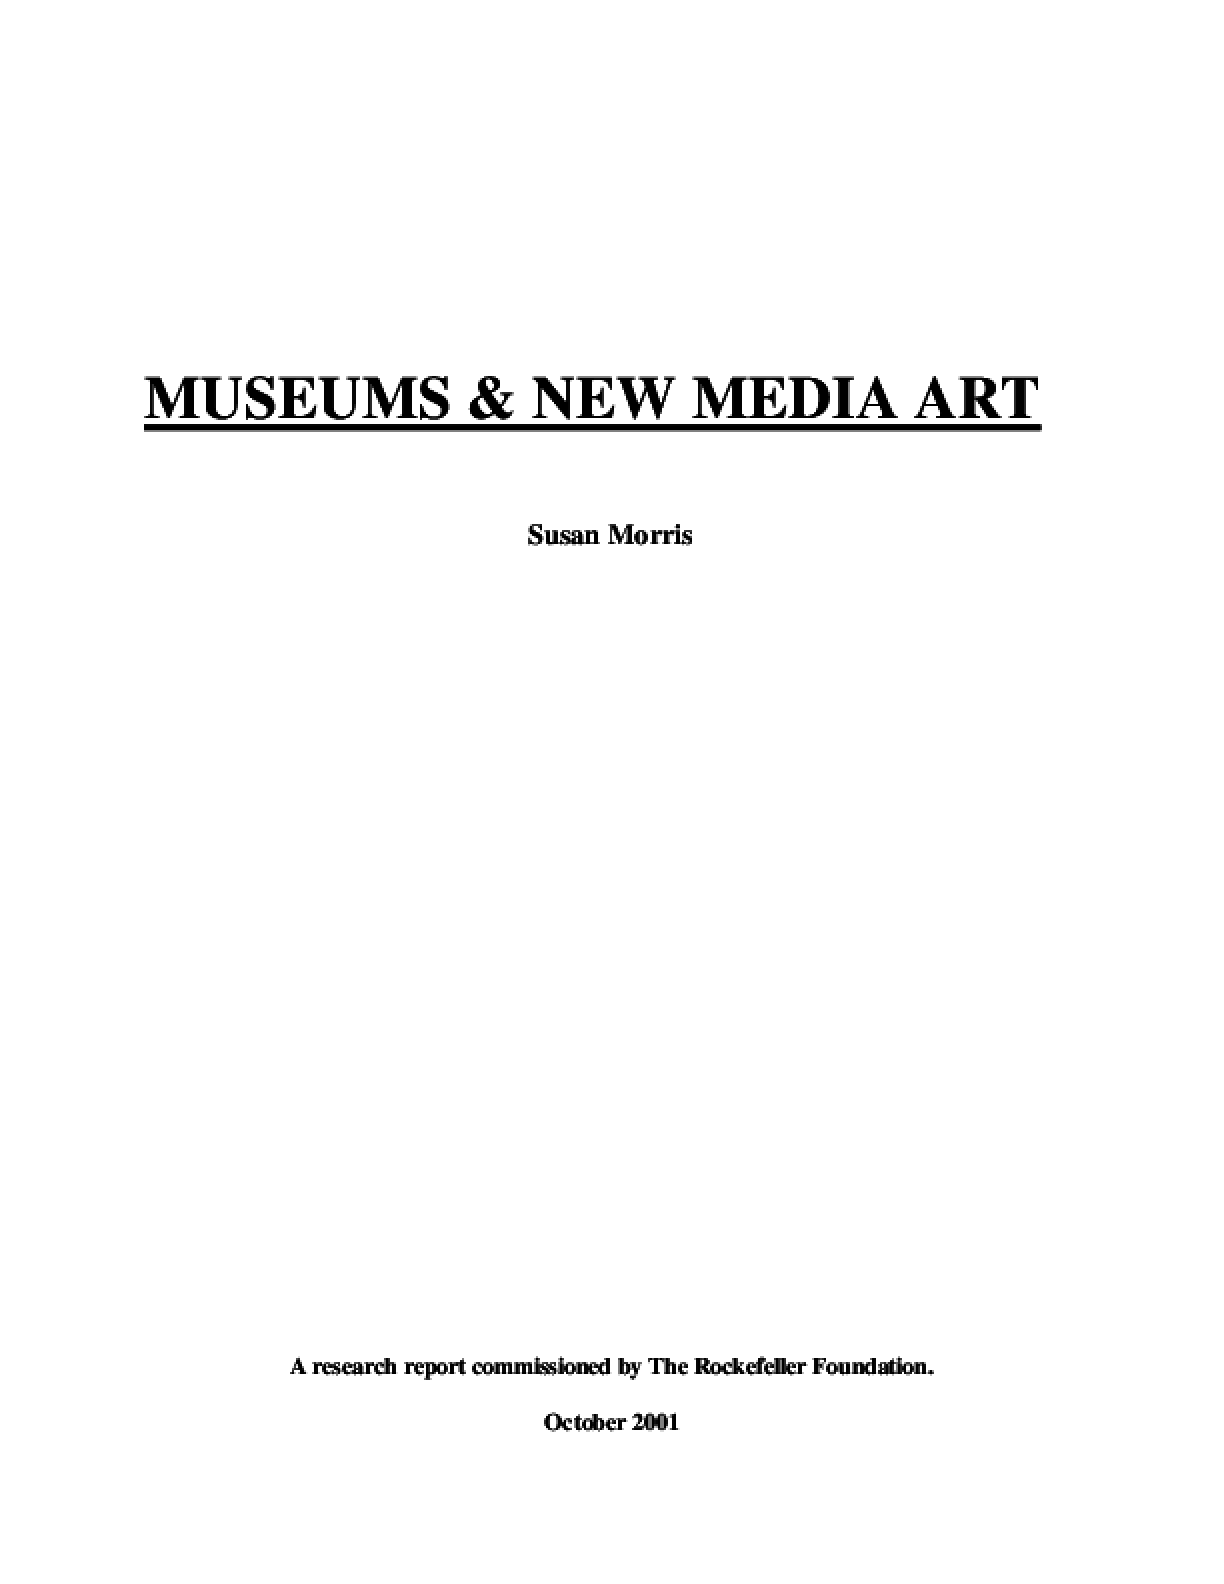 Museums and New Media Art